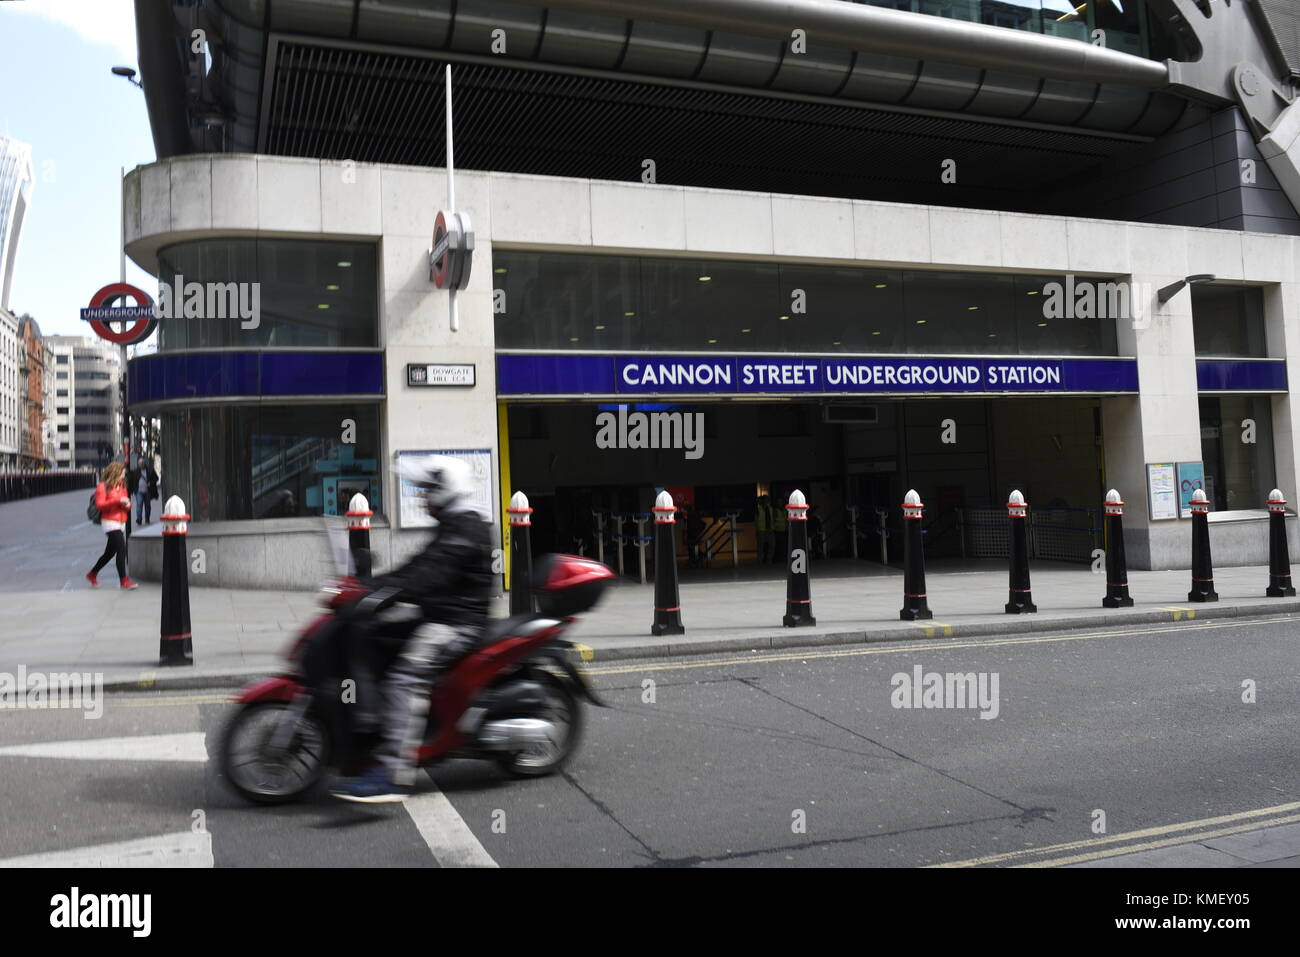 Cannon Street Underground Station, Cannon St, London EC4N 6AP. Cannon Street station, also known as London Cannon - Stock Image